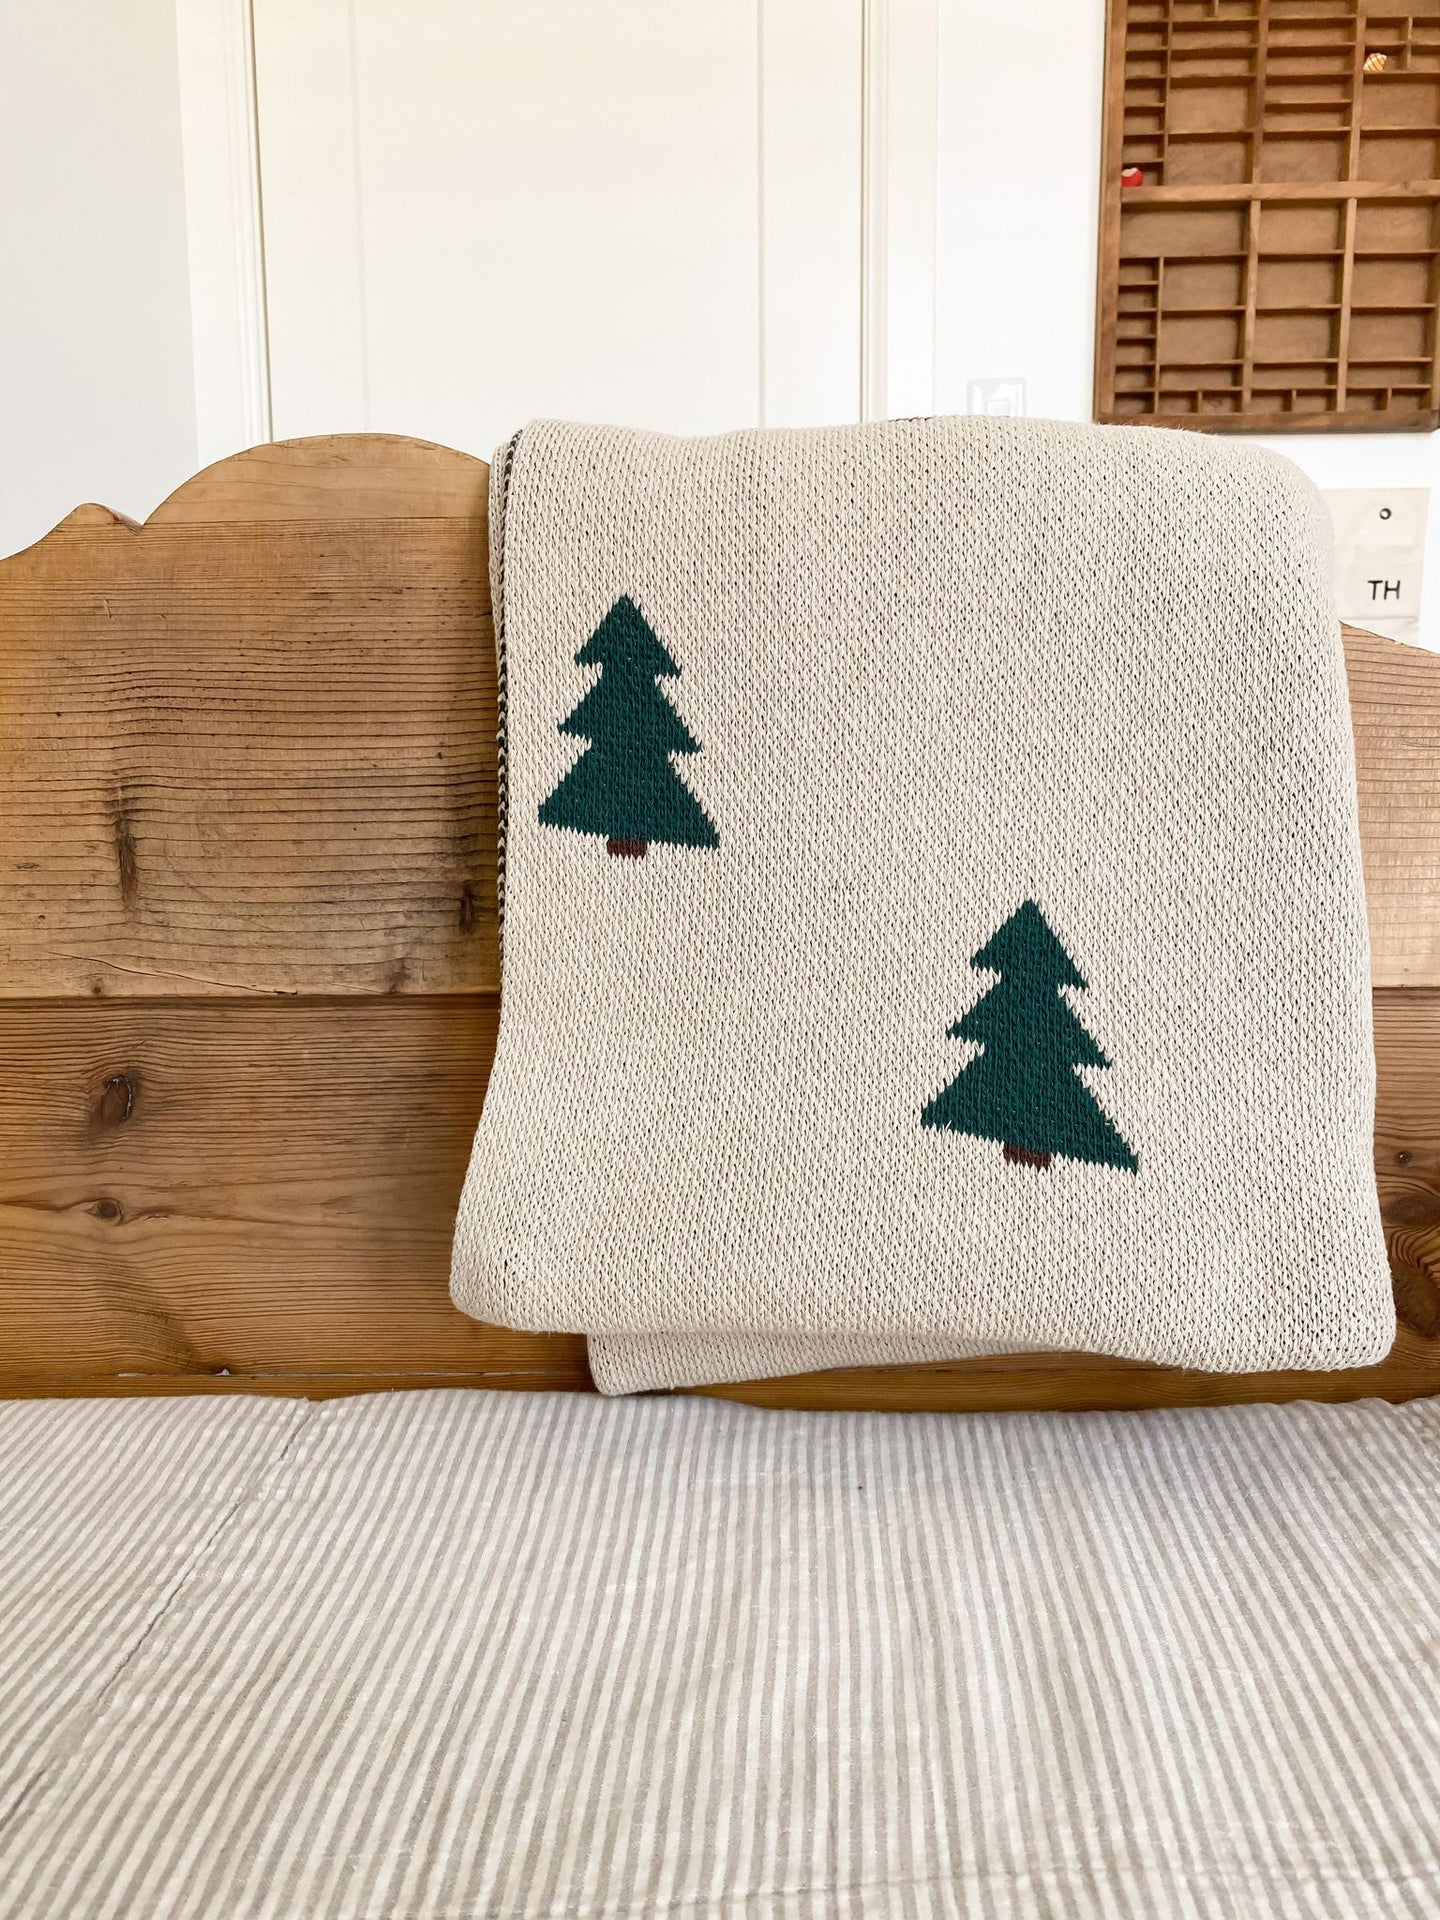 Fin & Vince - Knit Pine Tree Blanket - Throw 50 x 60in